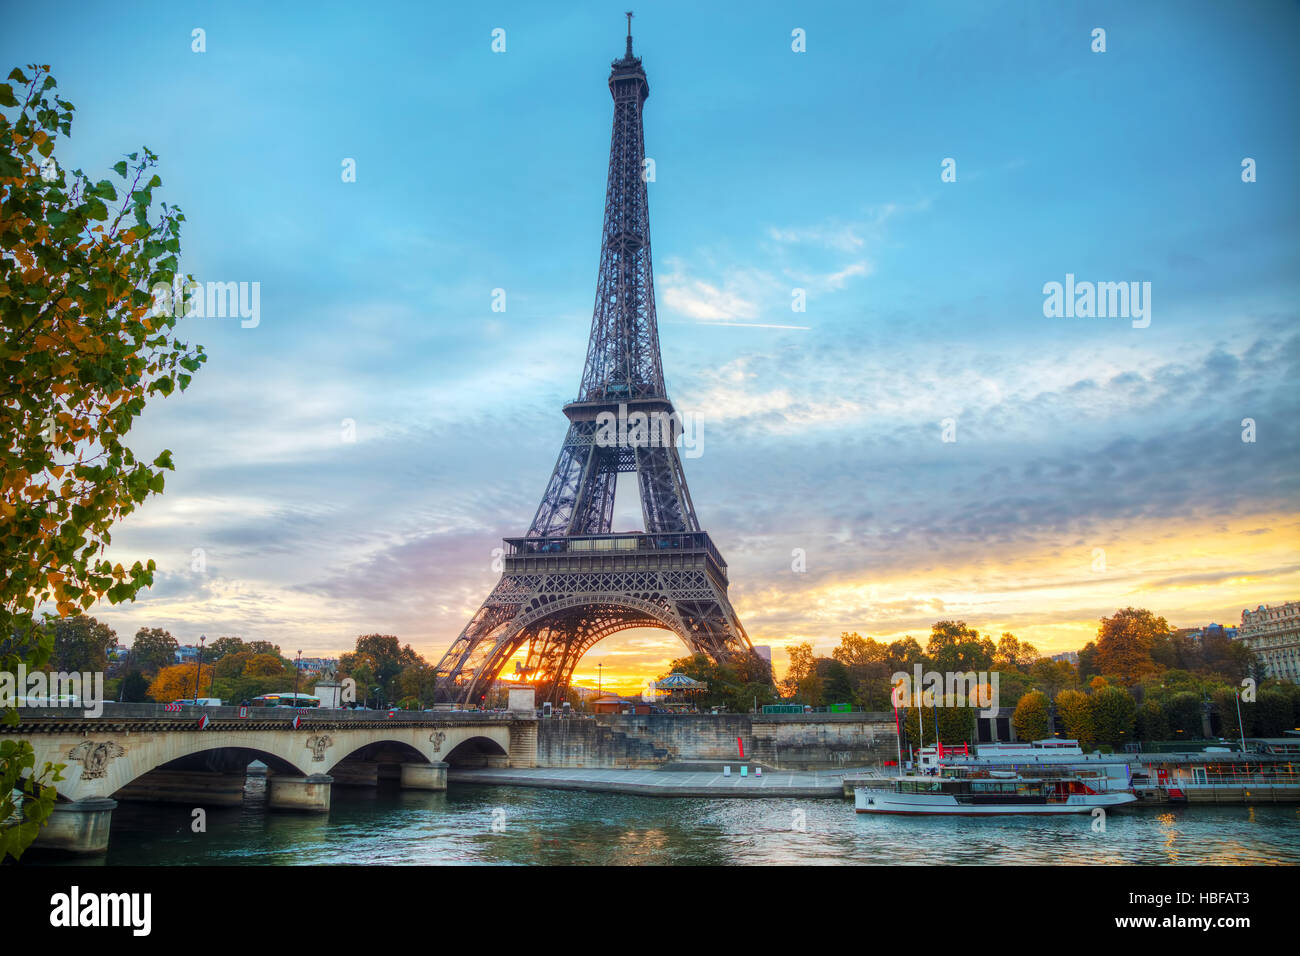 Cityscape with the Eiffel tower in Paris, France at sunrise - Stock Image